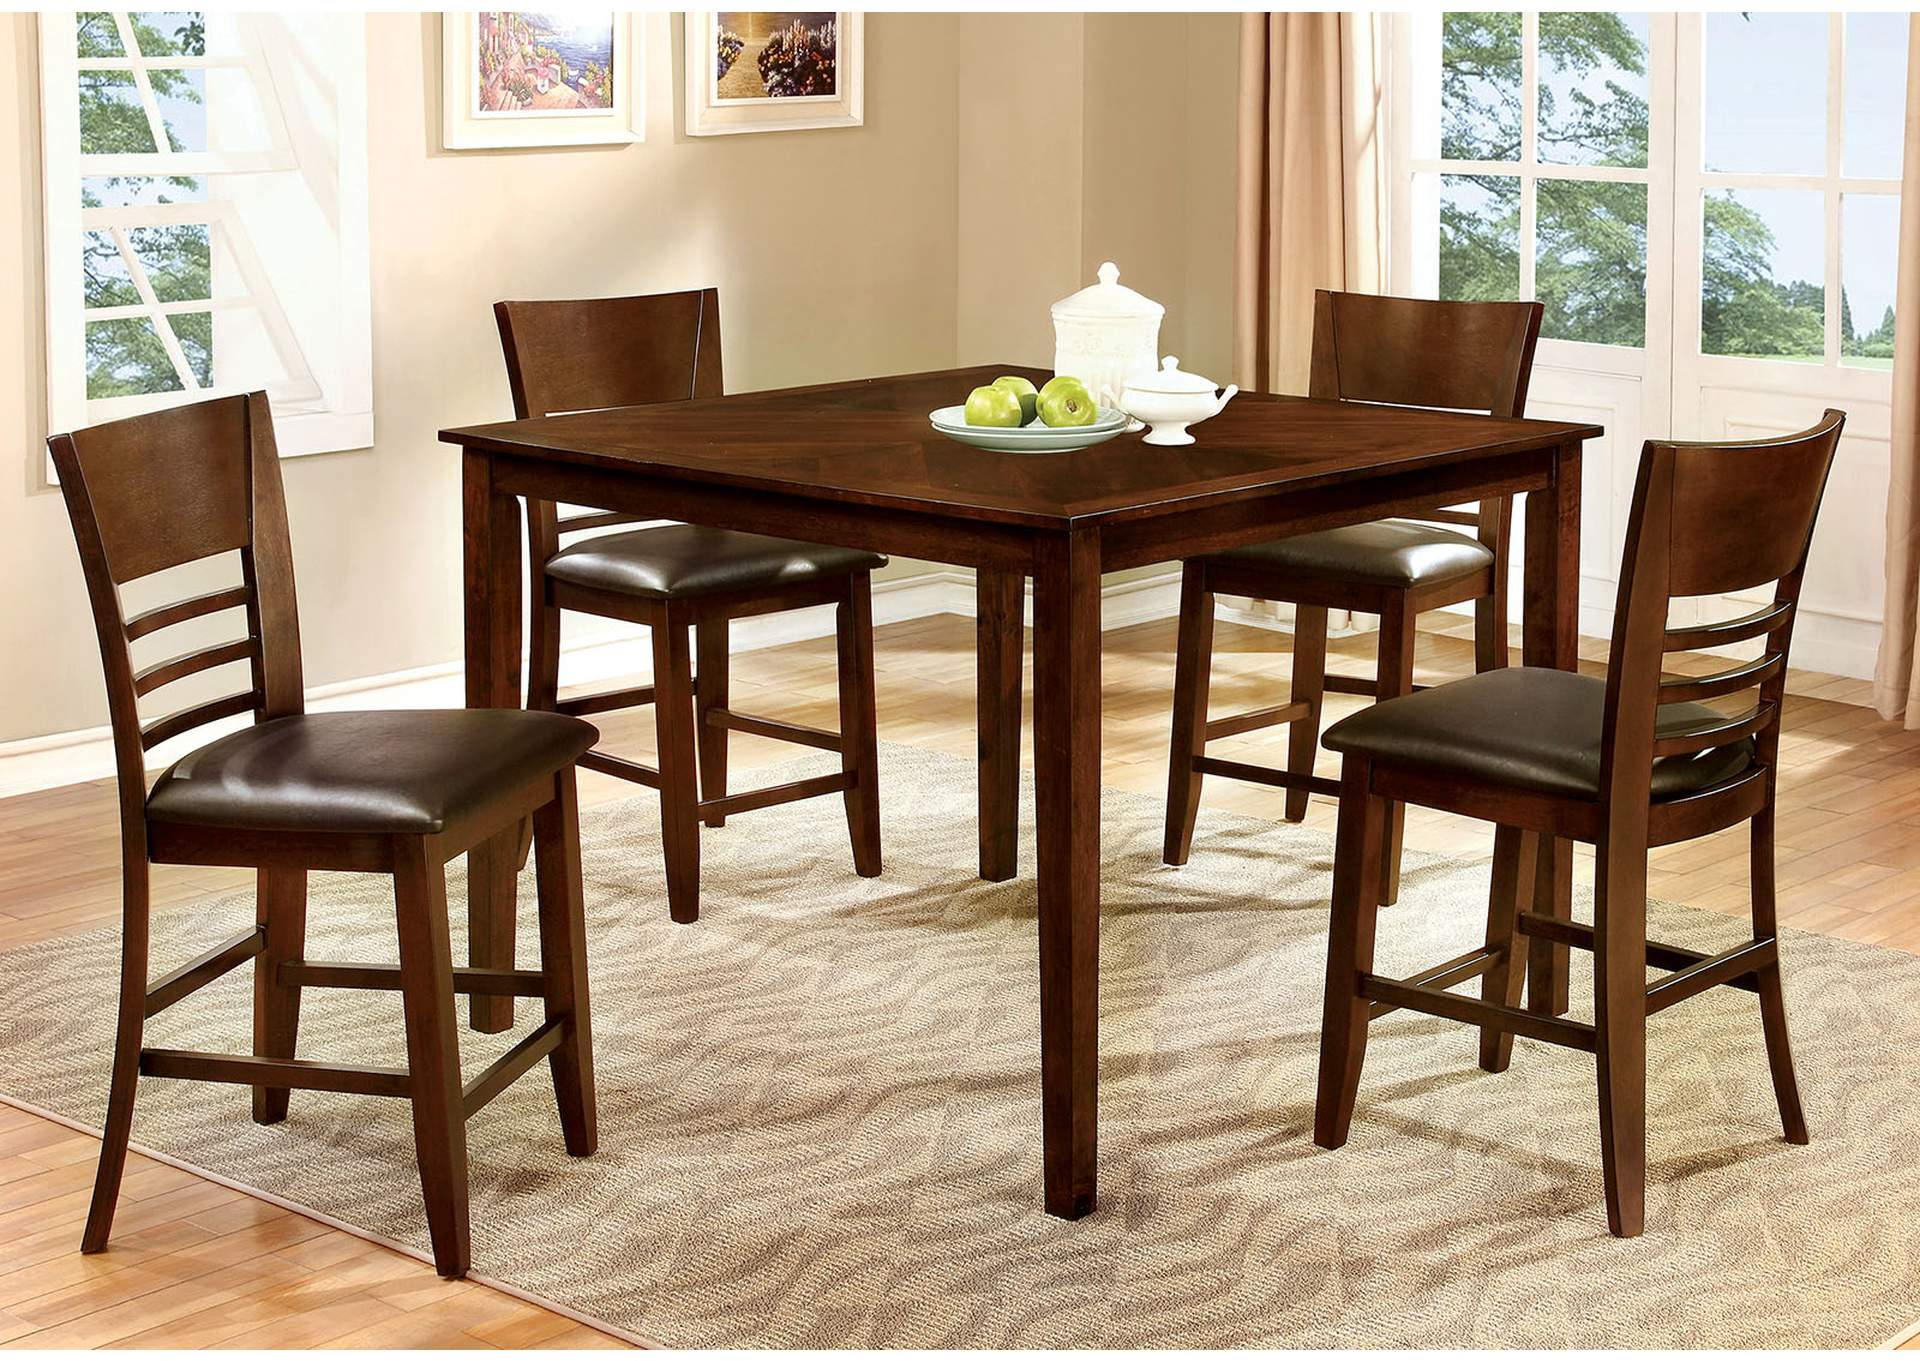 Hillsview II Brown 5 Piece. Counter Table Set,Furniture of America